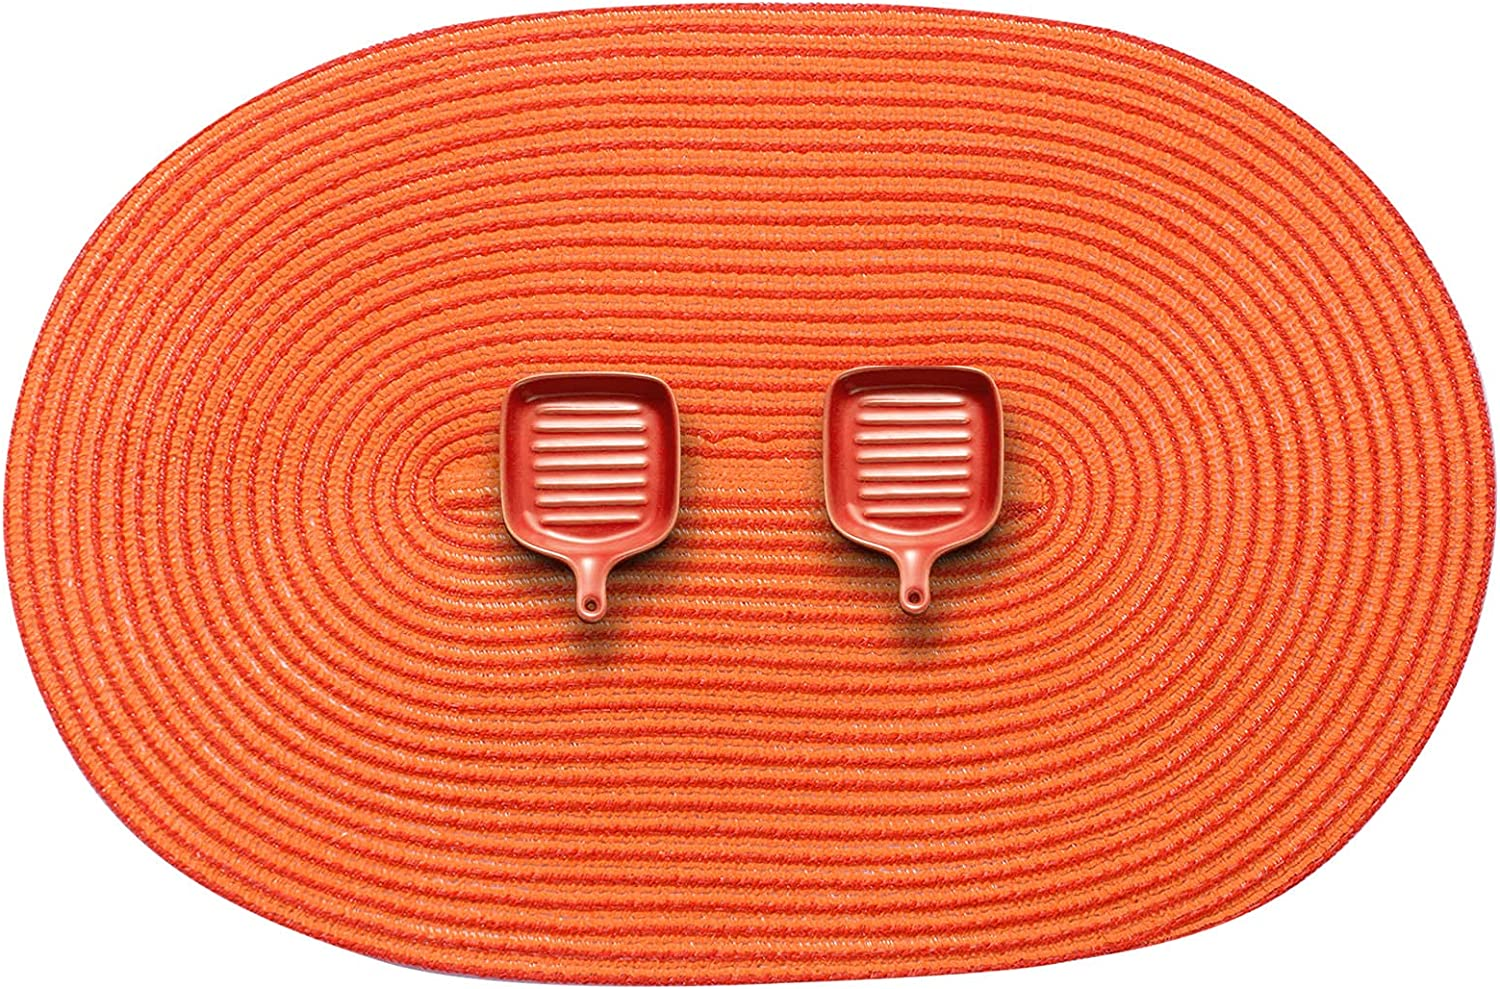 AHHFSMEI Oval Braided Placemats Safety and trust 12x18 Phoenix Mall for Table Inch D Mats